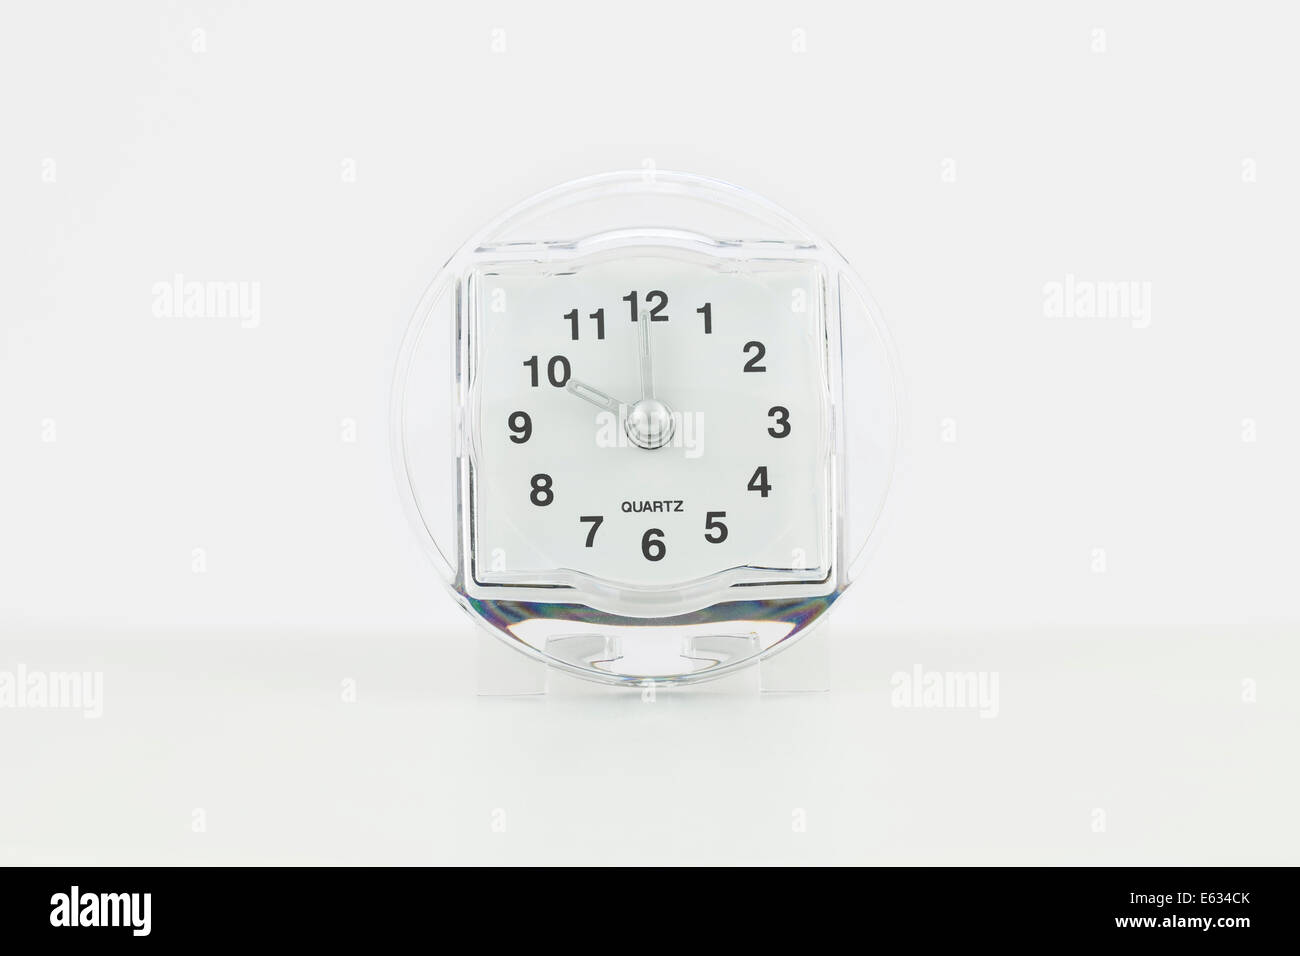 Ten o'clock - Stock Image